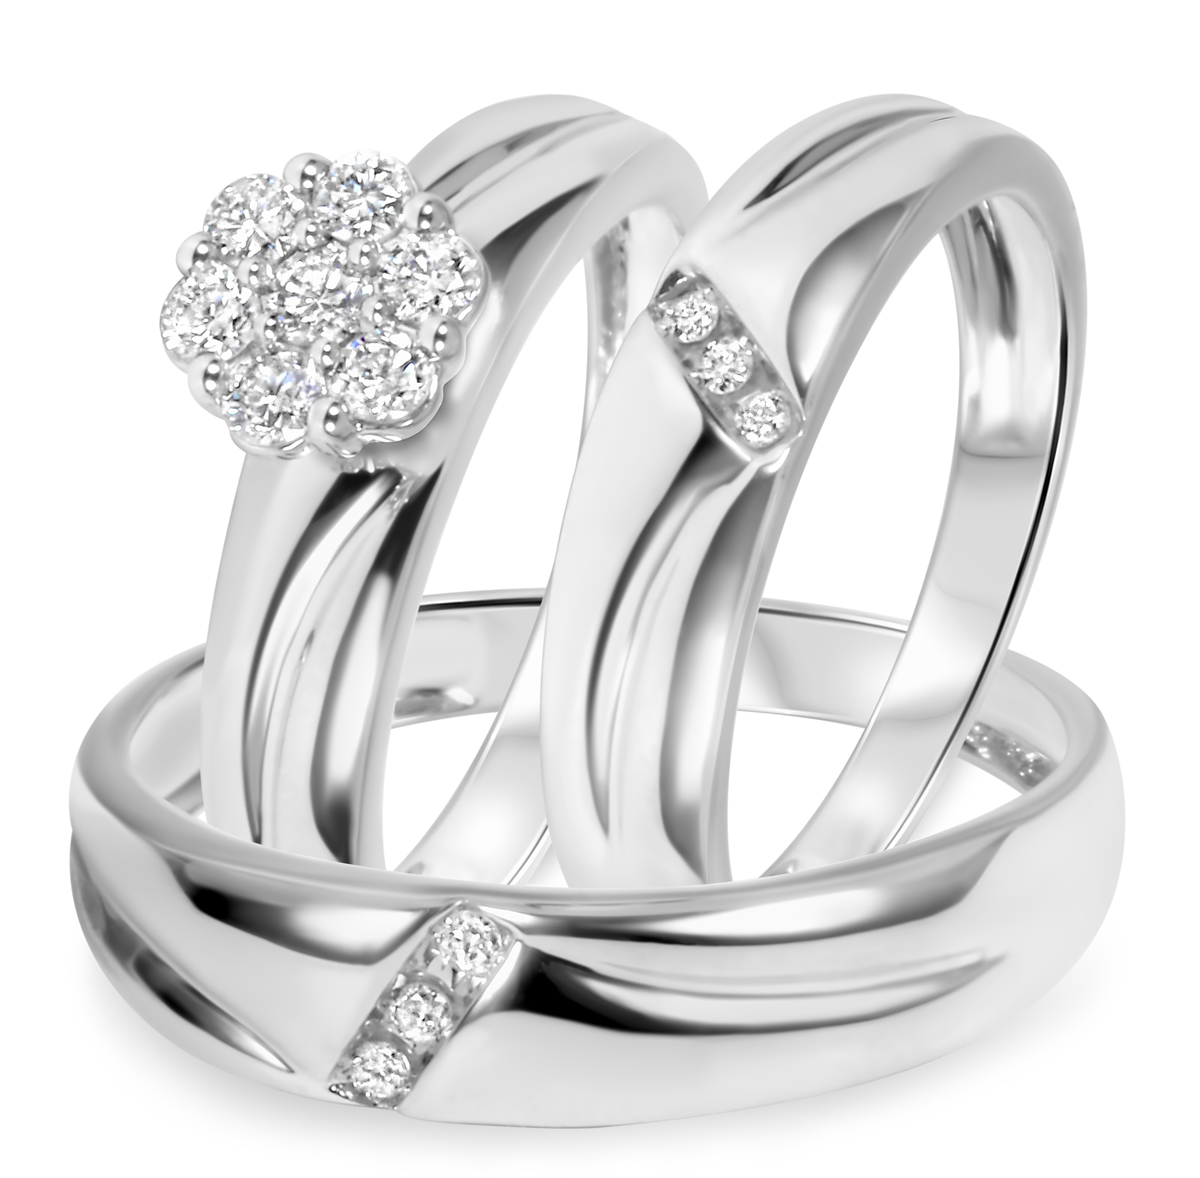 fake diamond wedding set ny wedding rings set Nyeasia s Round Cut CZ Wedding Ring Set